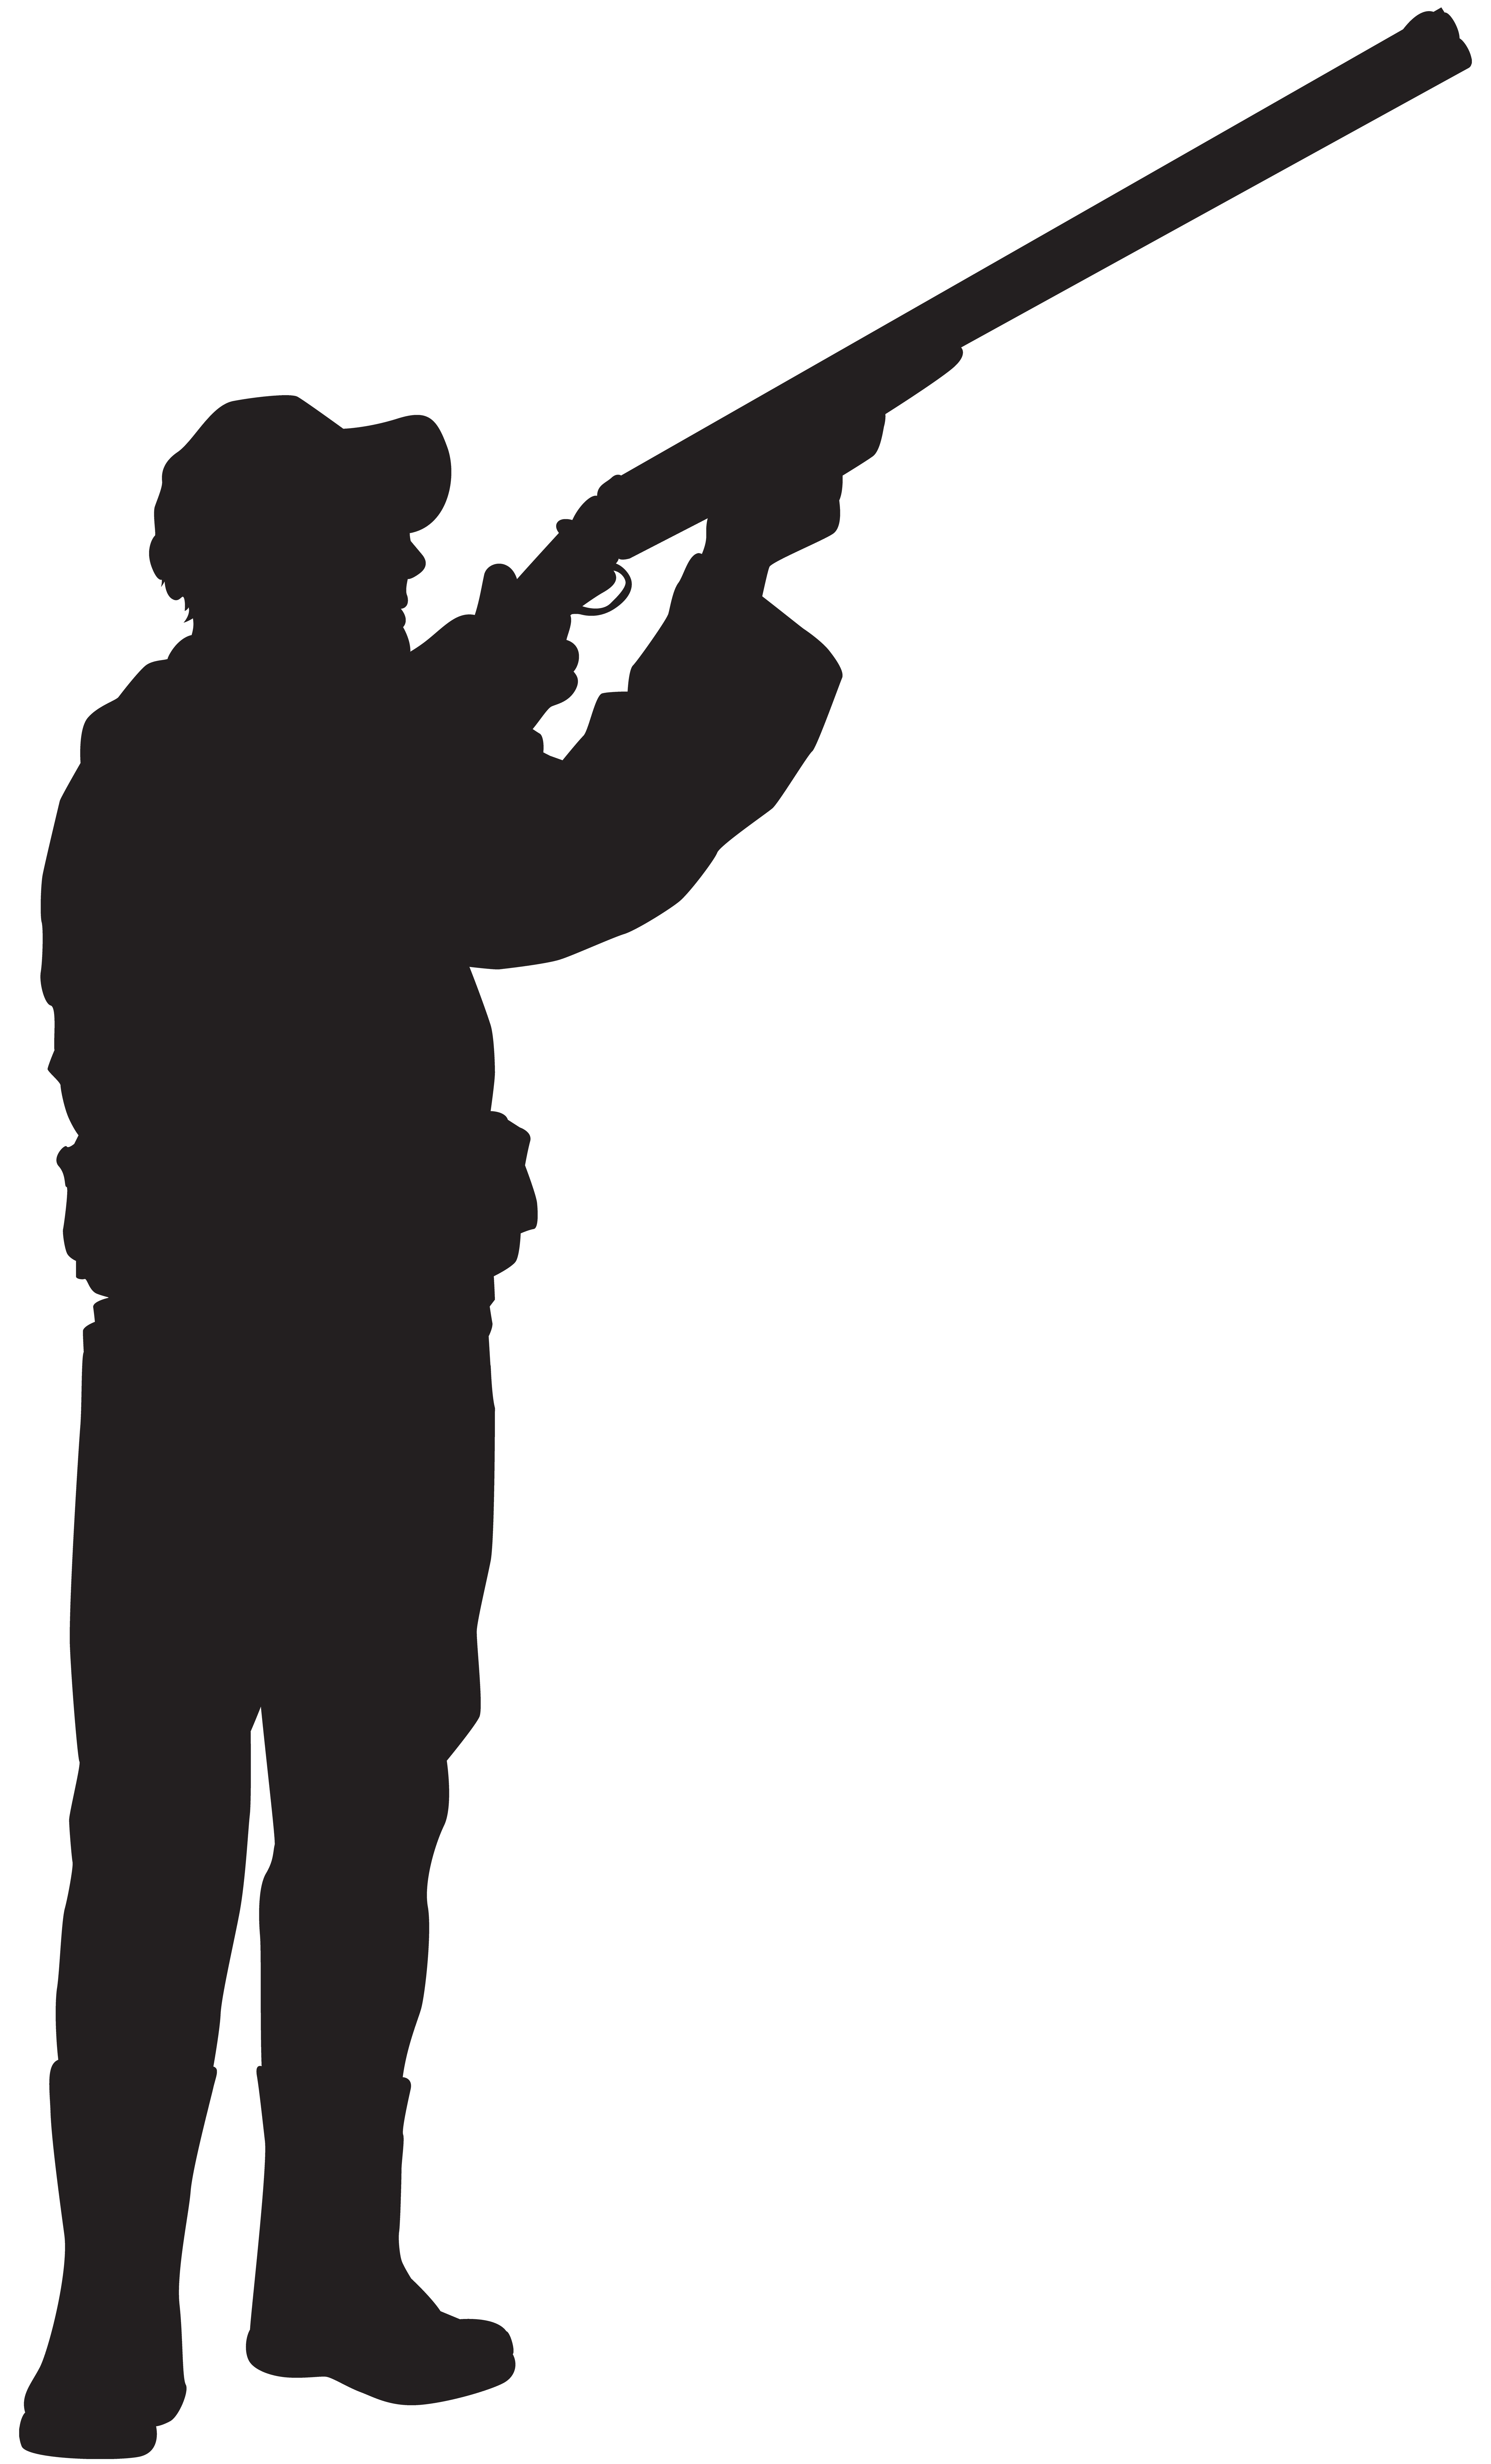 Silhouette clip art hunter. Hunting clipart black and white